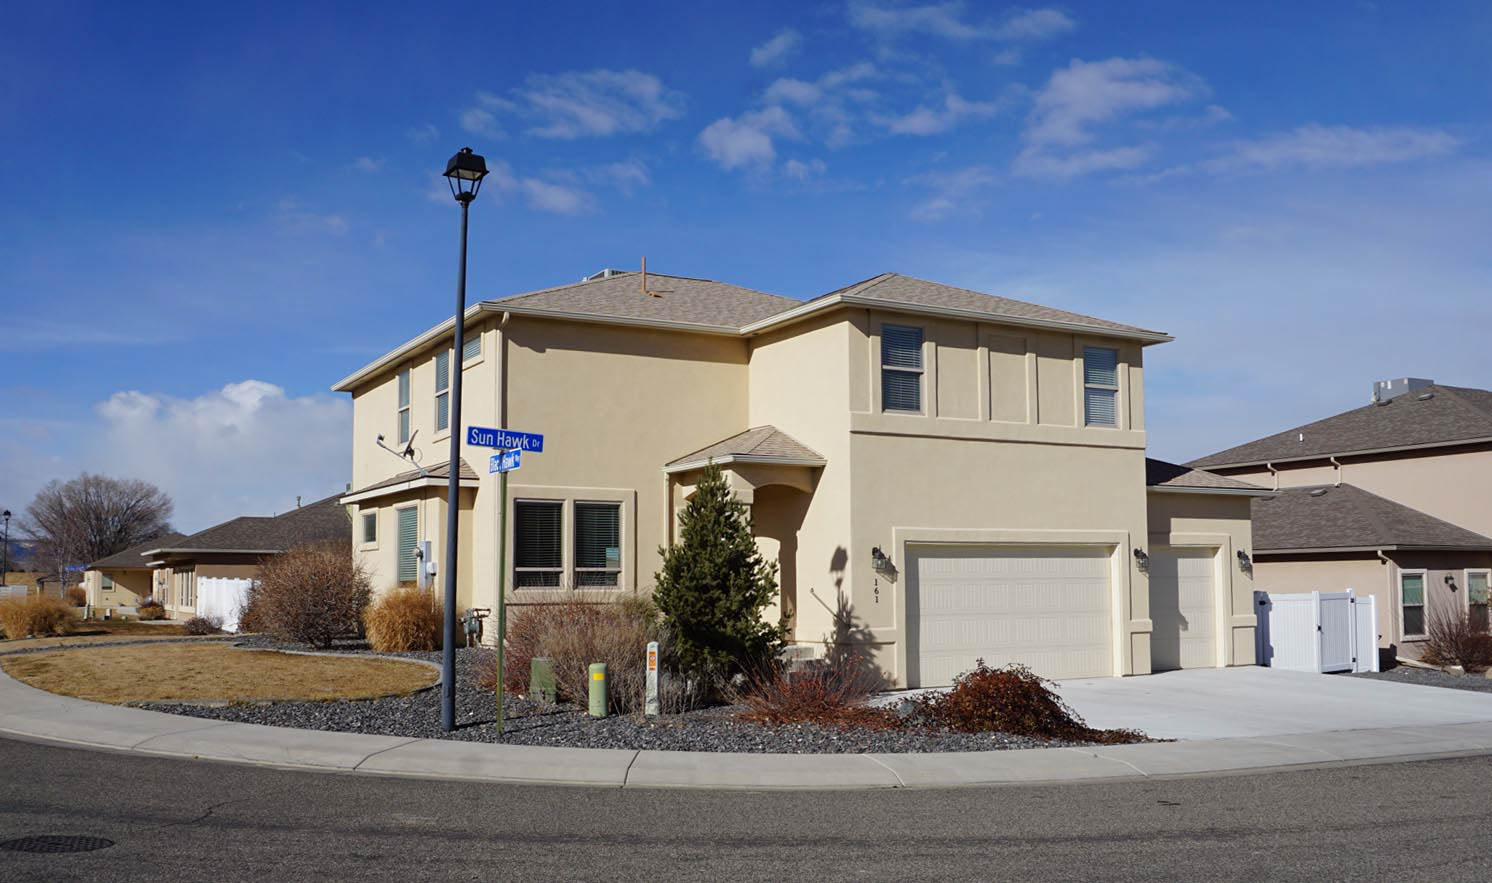 161 Sun Hawk Drive - 5 bedroom 3 bath home with RV parking